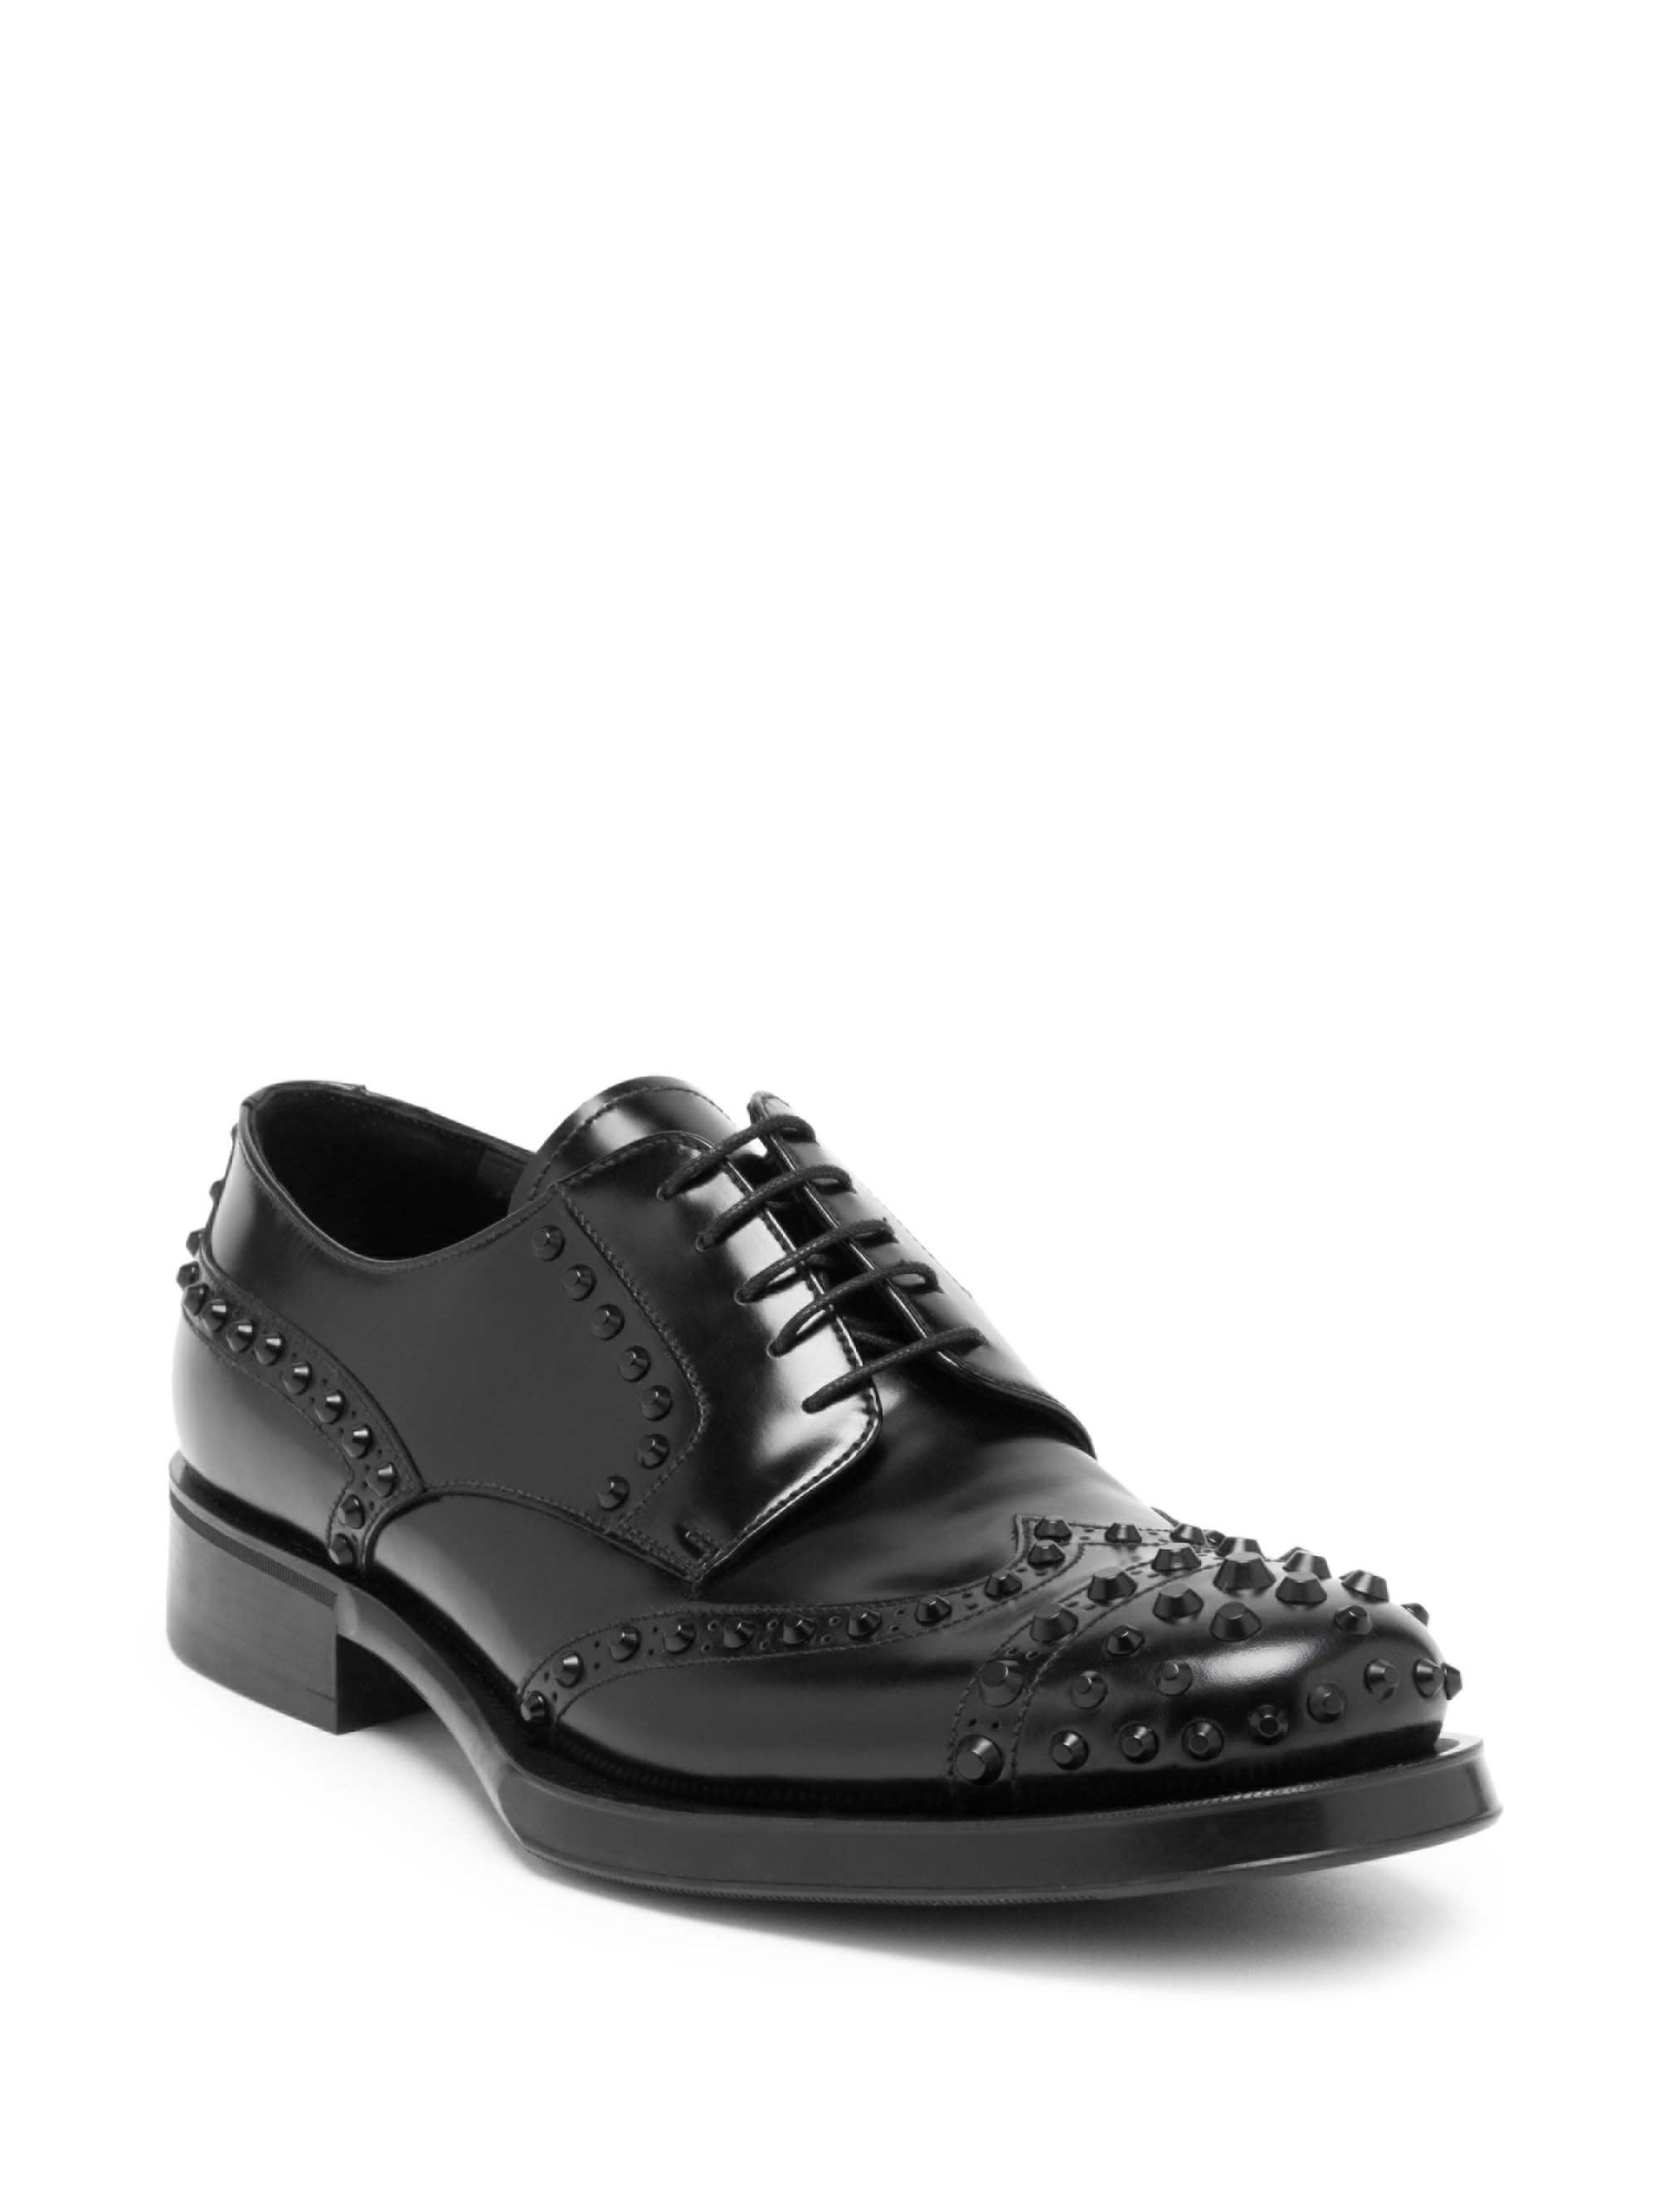 cfc4353dea58 Prada Spiked Front Leather Wingtip Oxford Shoes in Black for Men - Lyst